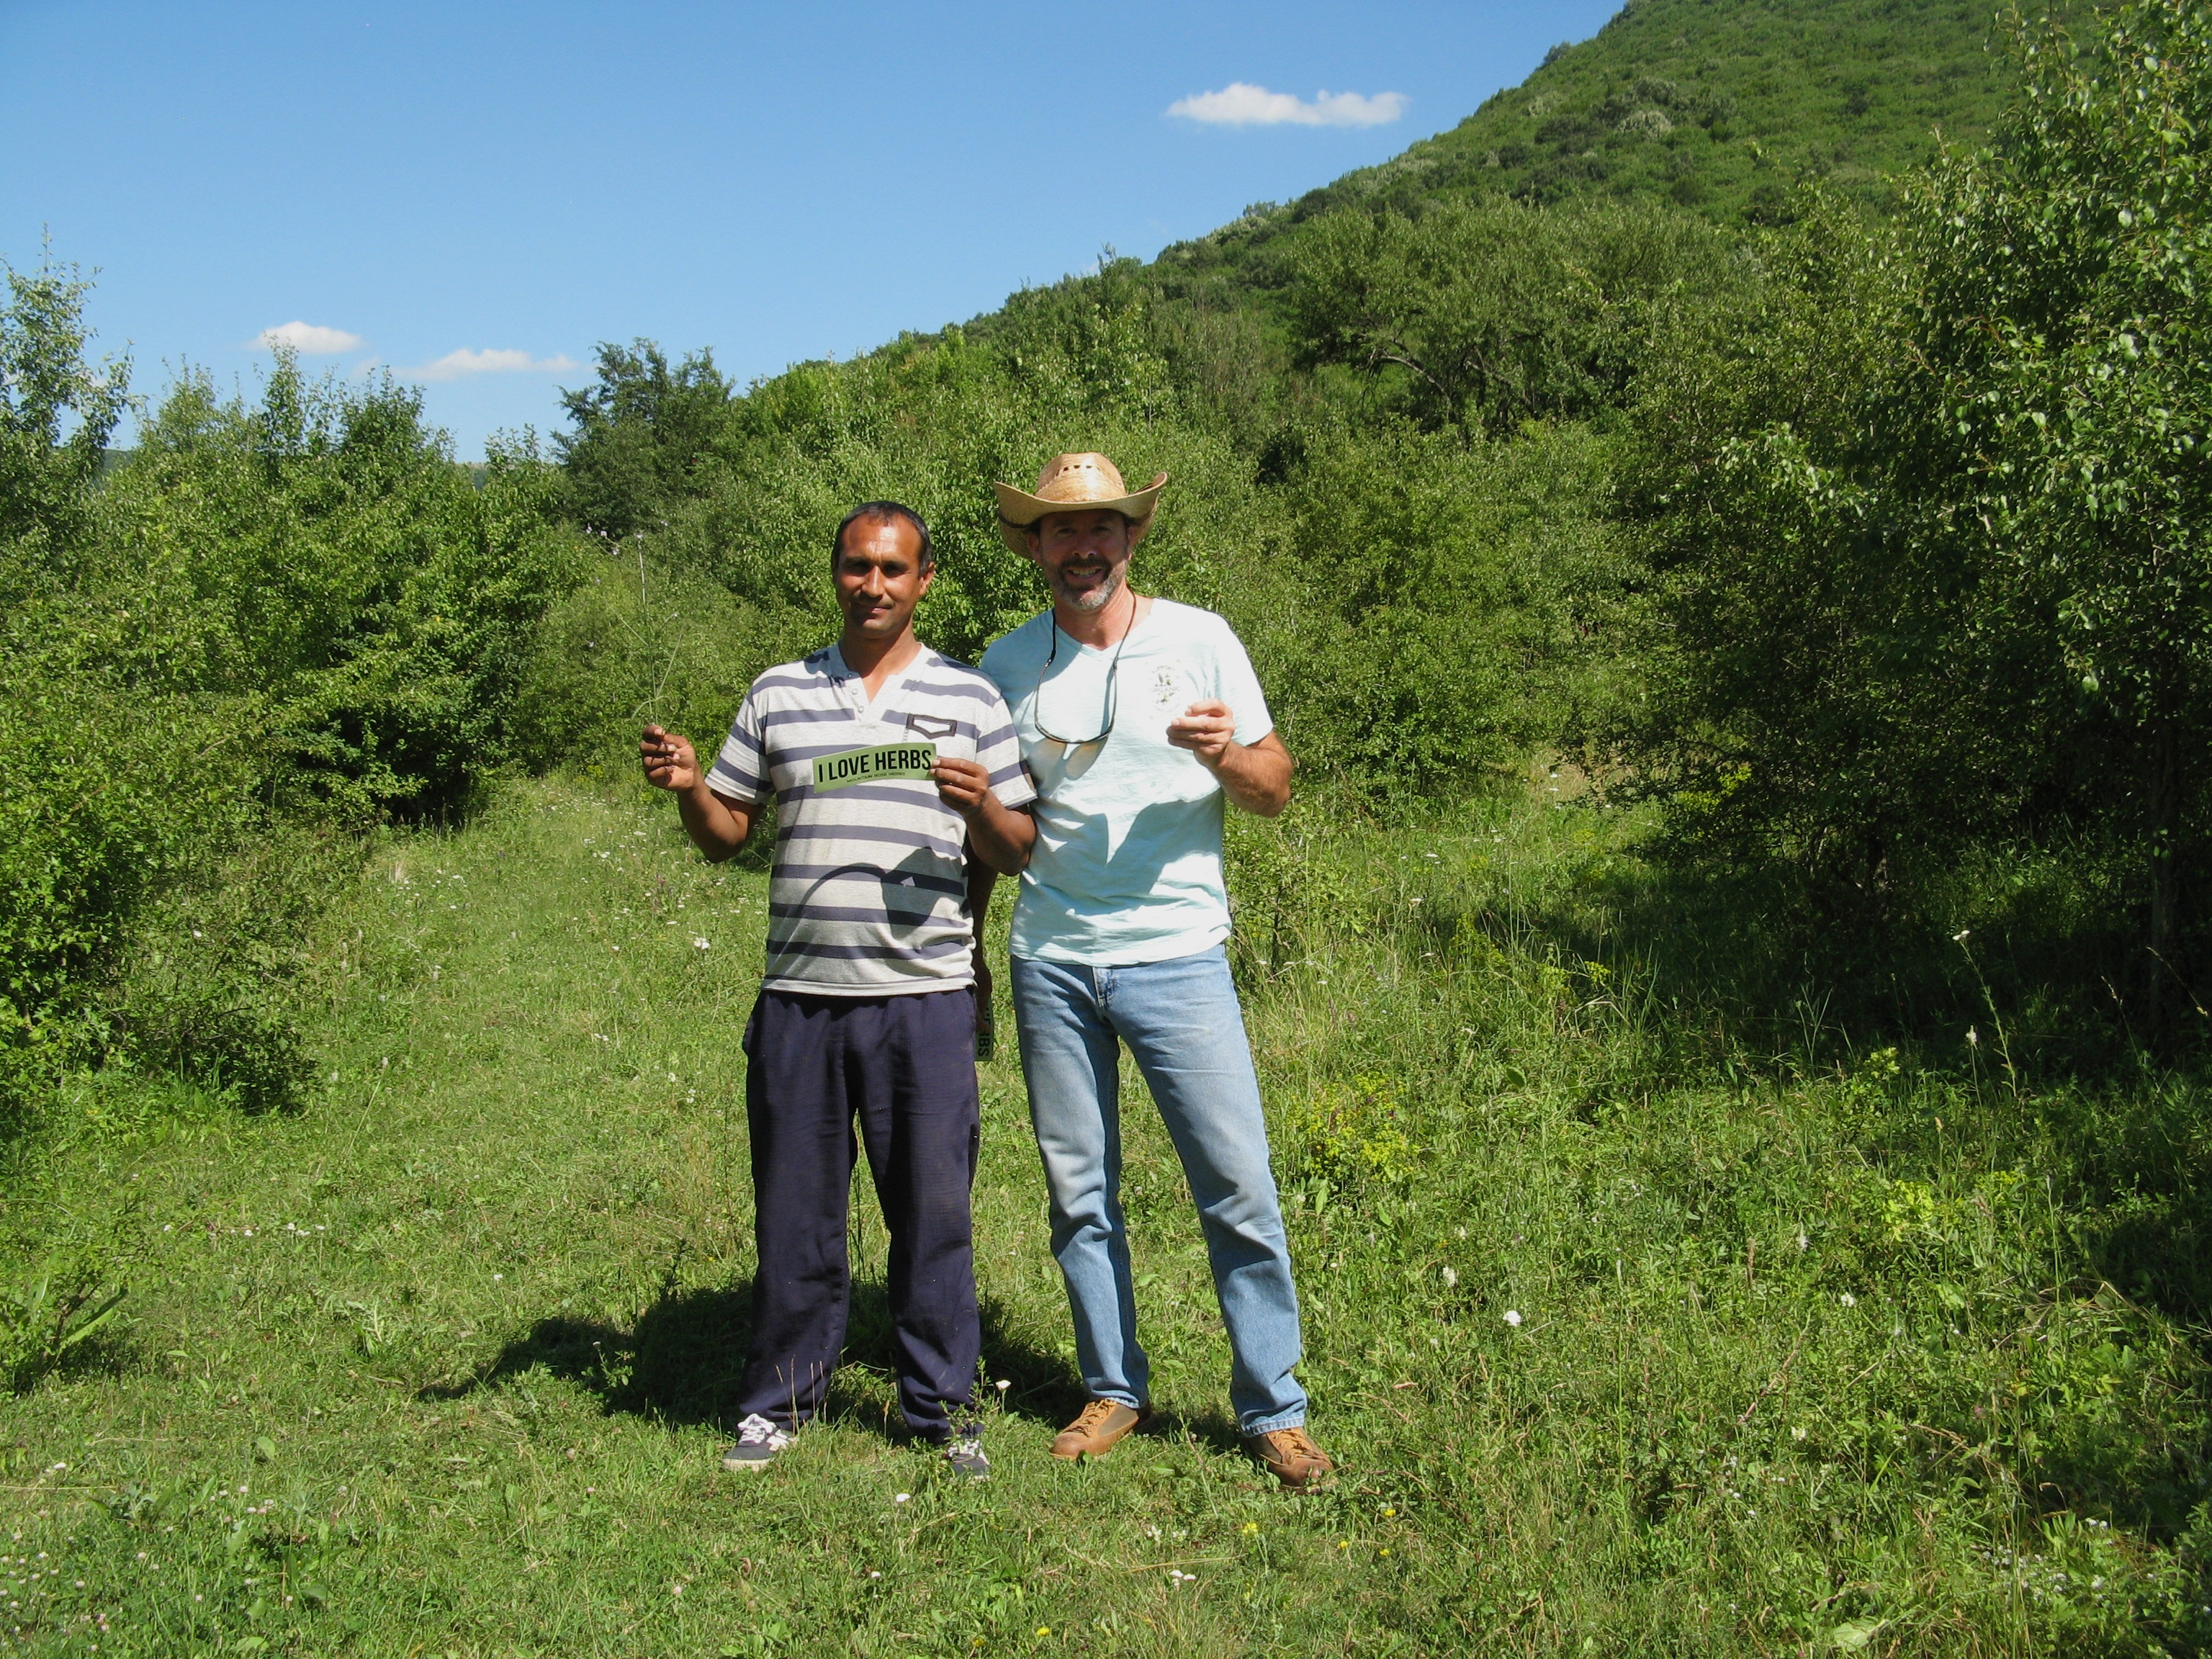 Mountain Rose Herbs procurement officer standing with farmer holding I Love Herbs bumper sticker in a field in Bulgaria